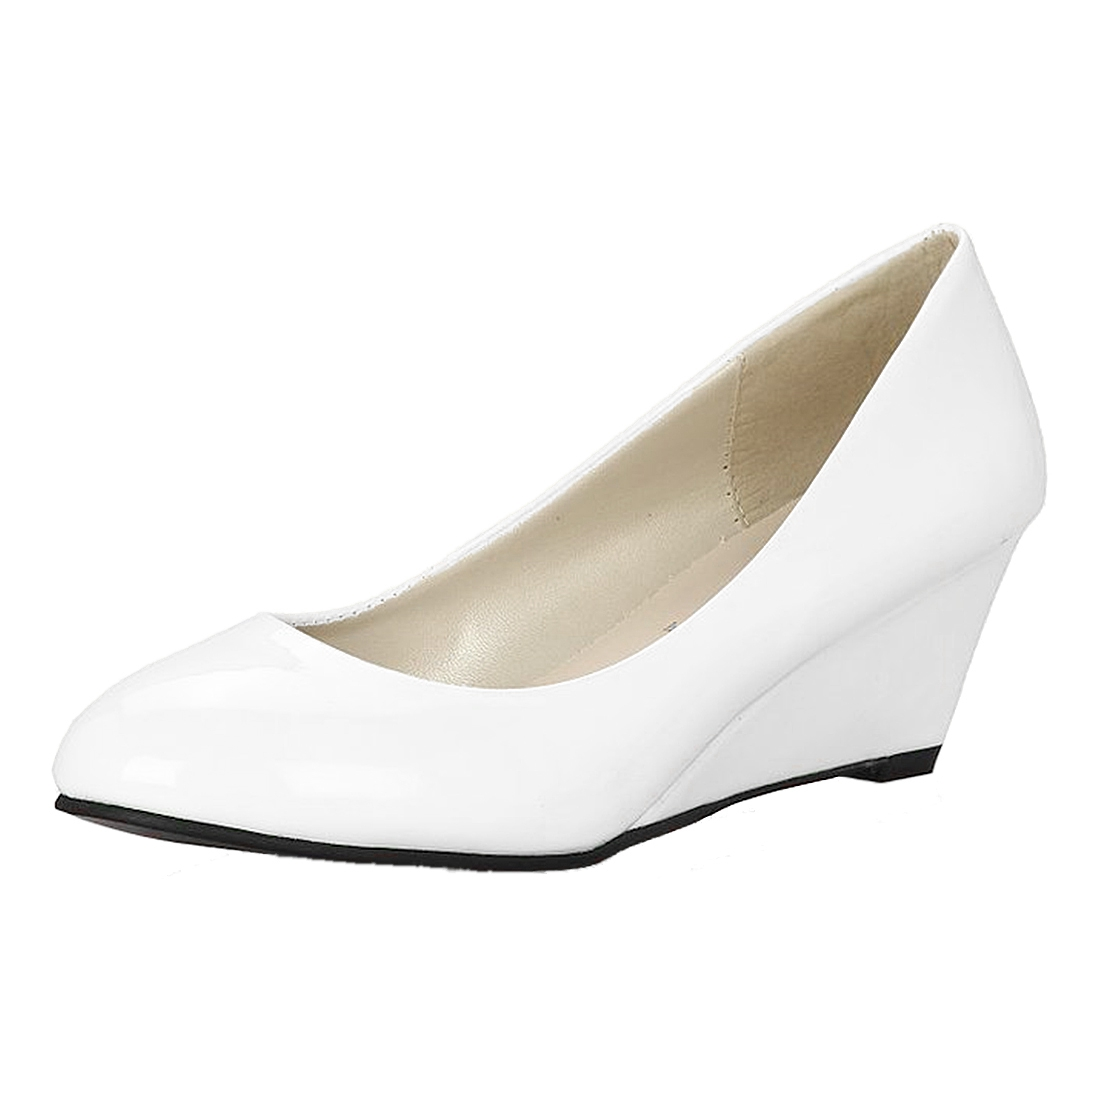 Classic Sexy office round Toe platform low Heels Women wedding Pumps Shoes Suede plus Size  White lady red shoes heels women pumps fashion suede high heels ladies wedding shoes platform round toe sexy footwear g752